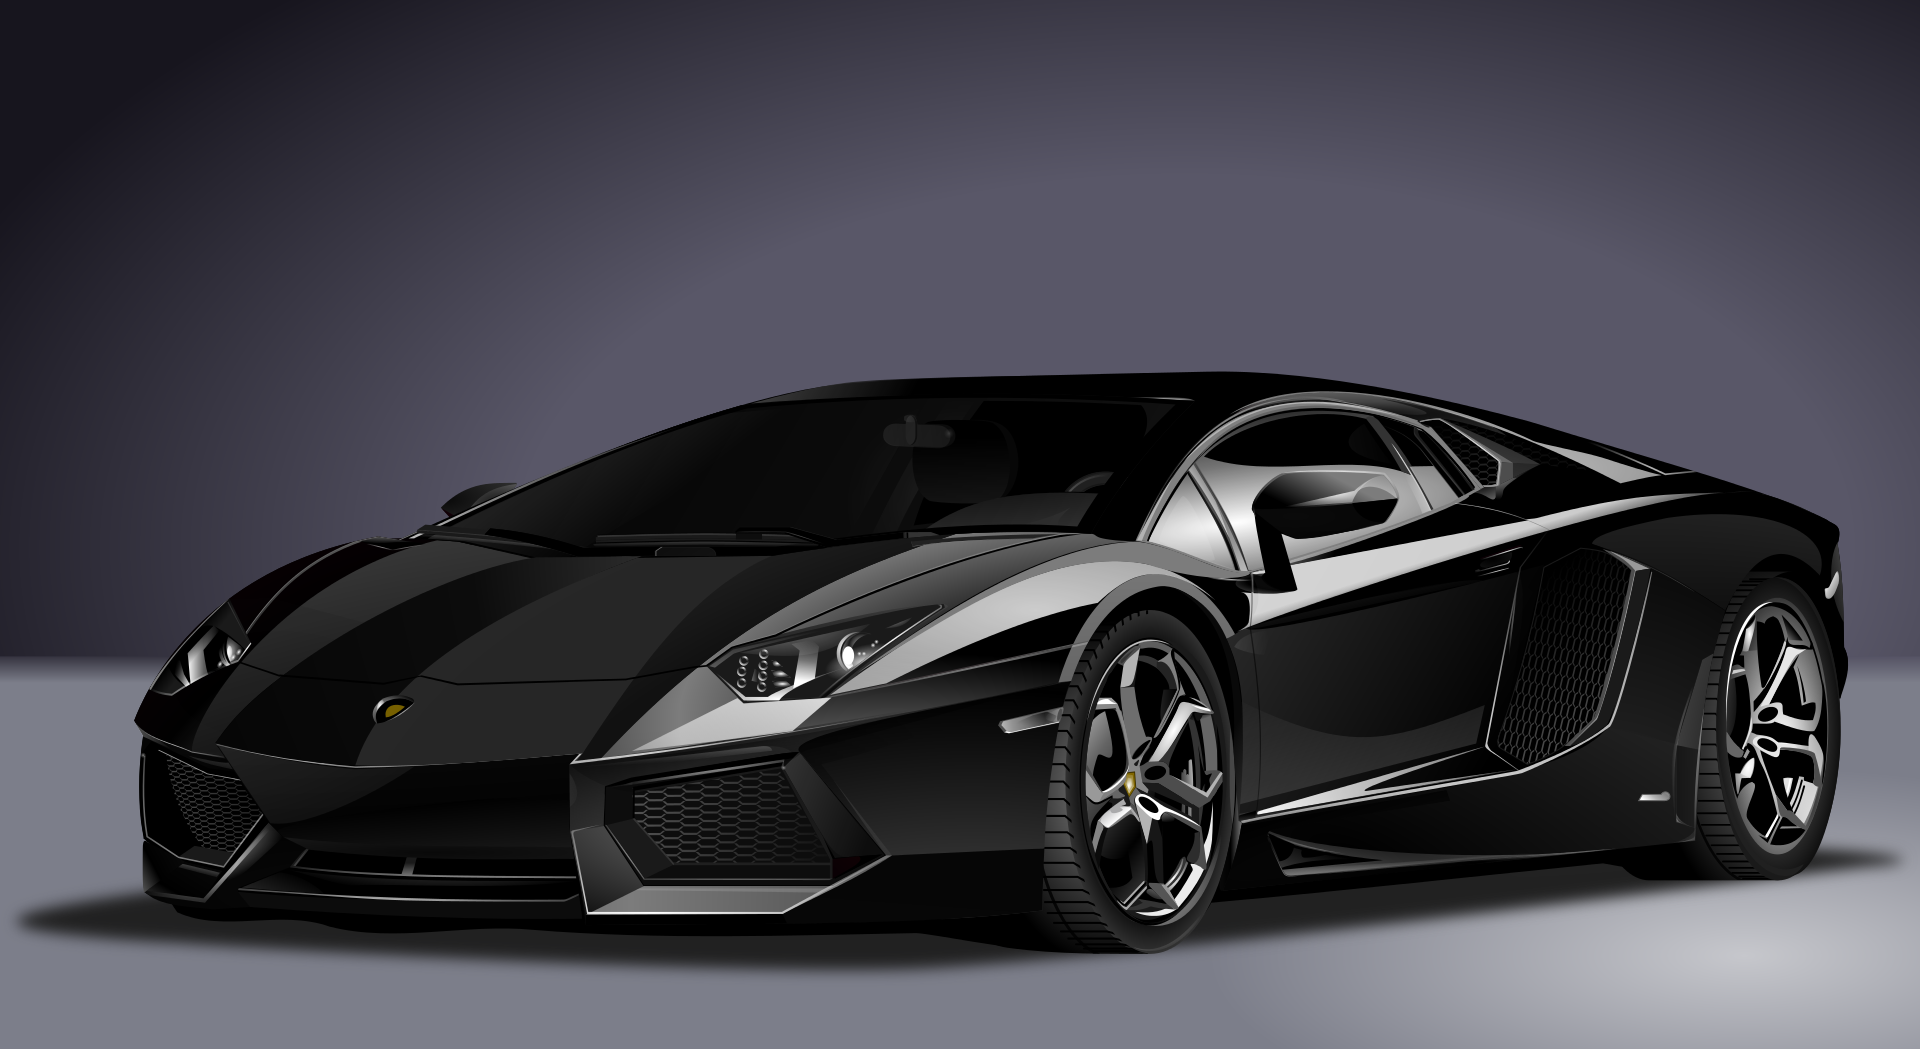 images feng shui - lefengshuifacile.com - voiture luxe - Lamborghini